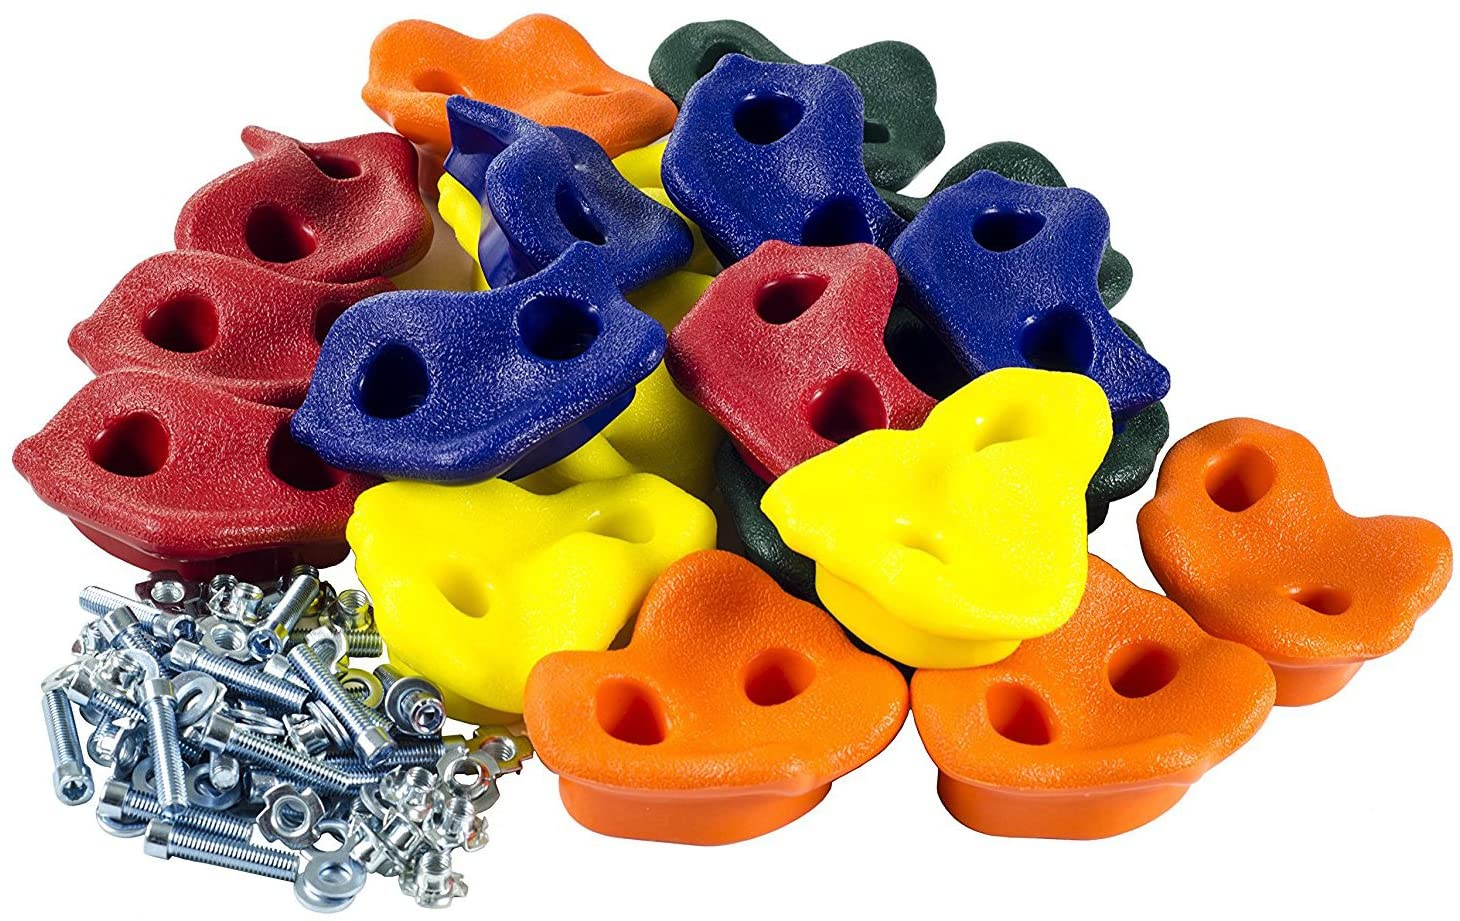 20 Extra Large Deluxe Rock Climbing Holds with Mounting Hardware